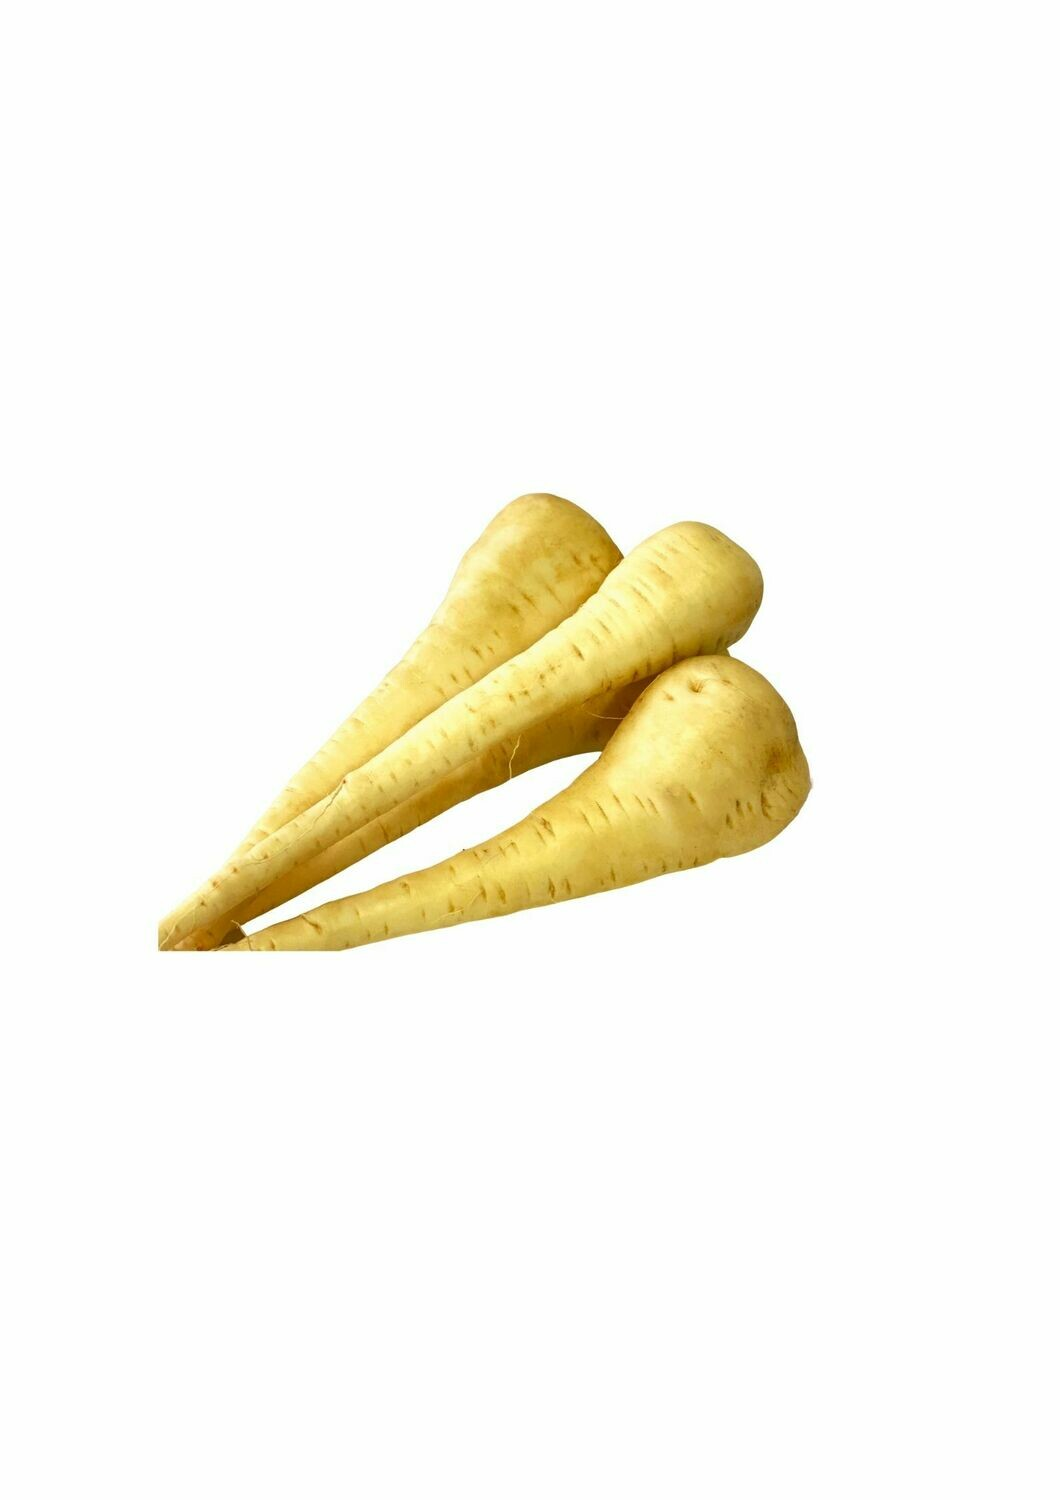 PARSNIPS (EACH)